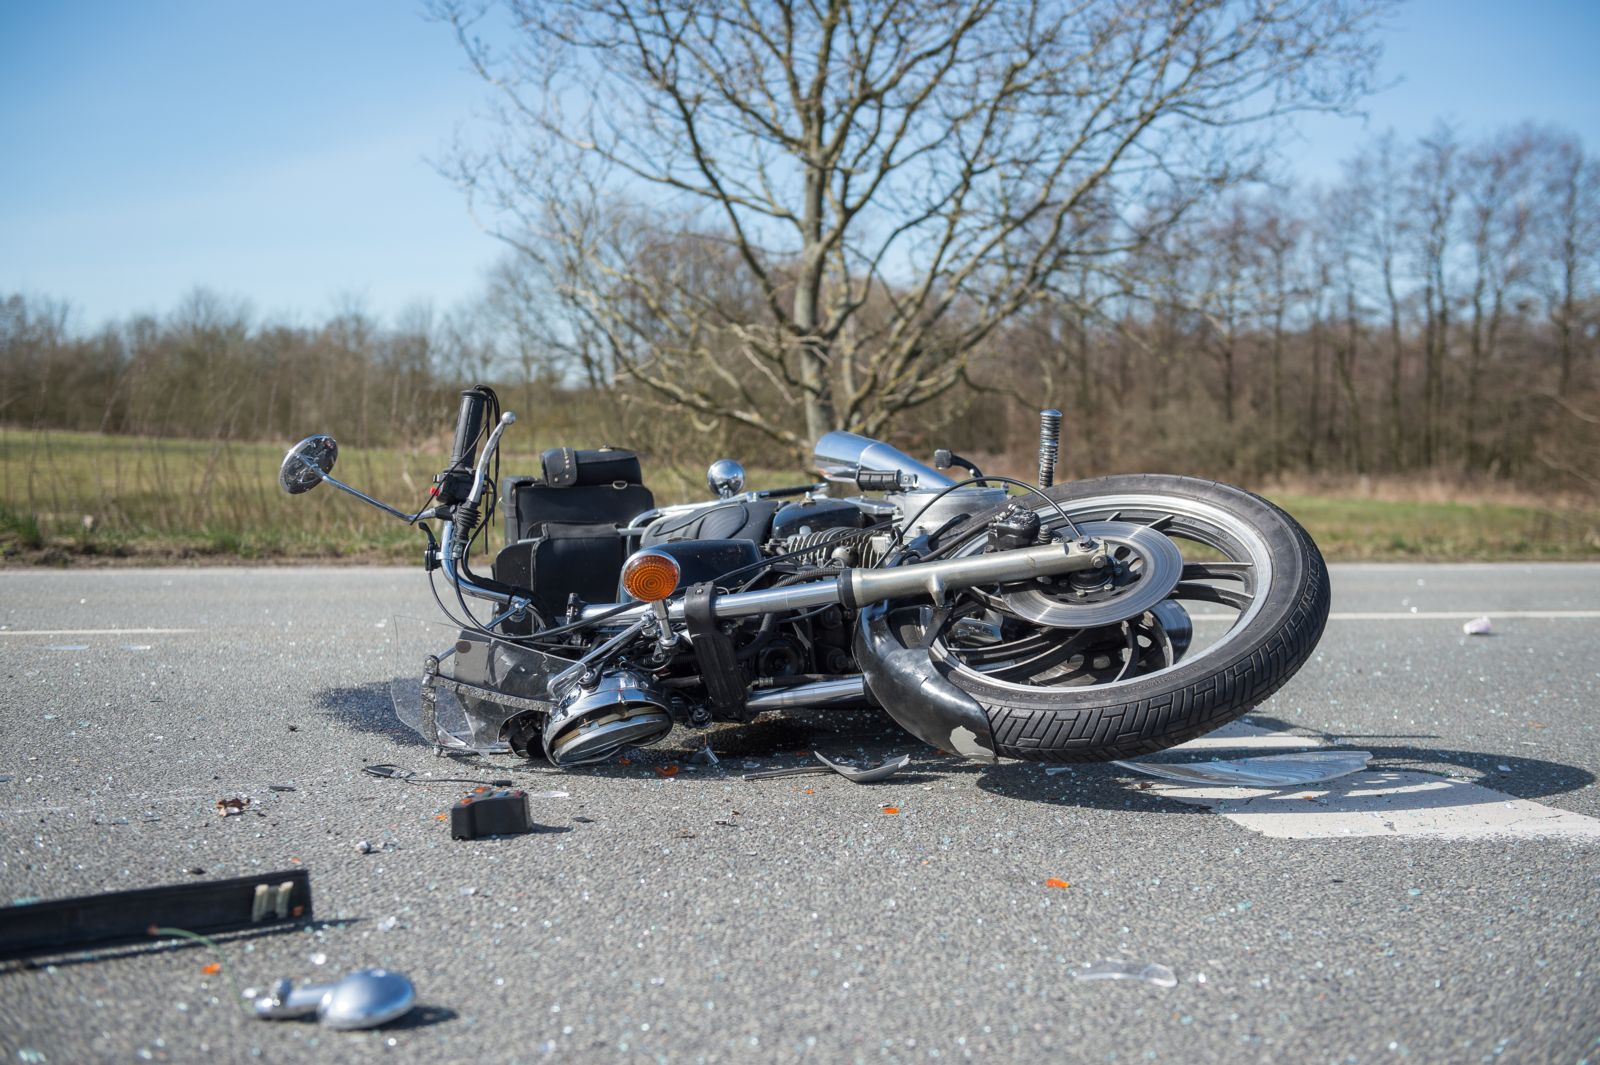 Motorcycle Laying on Its Side After an Accident